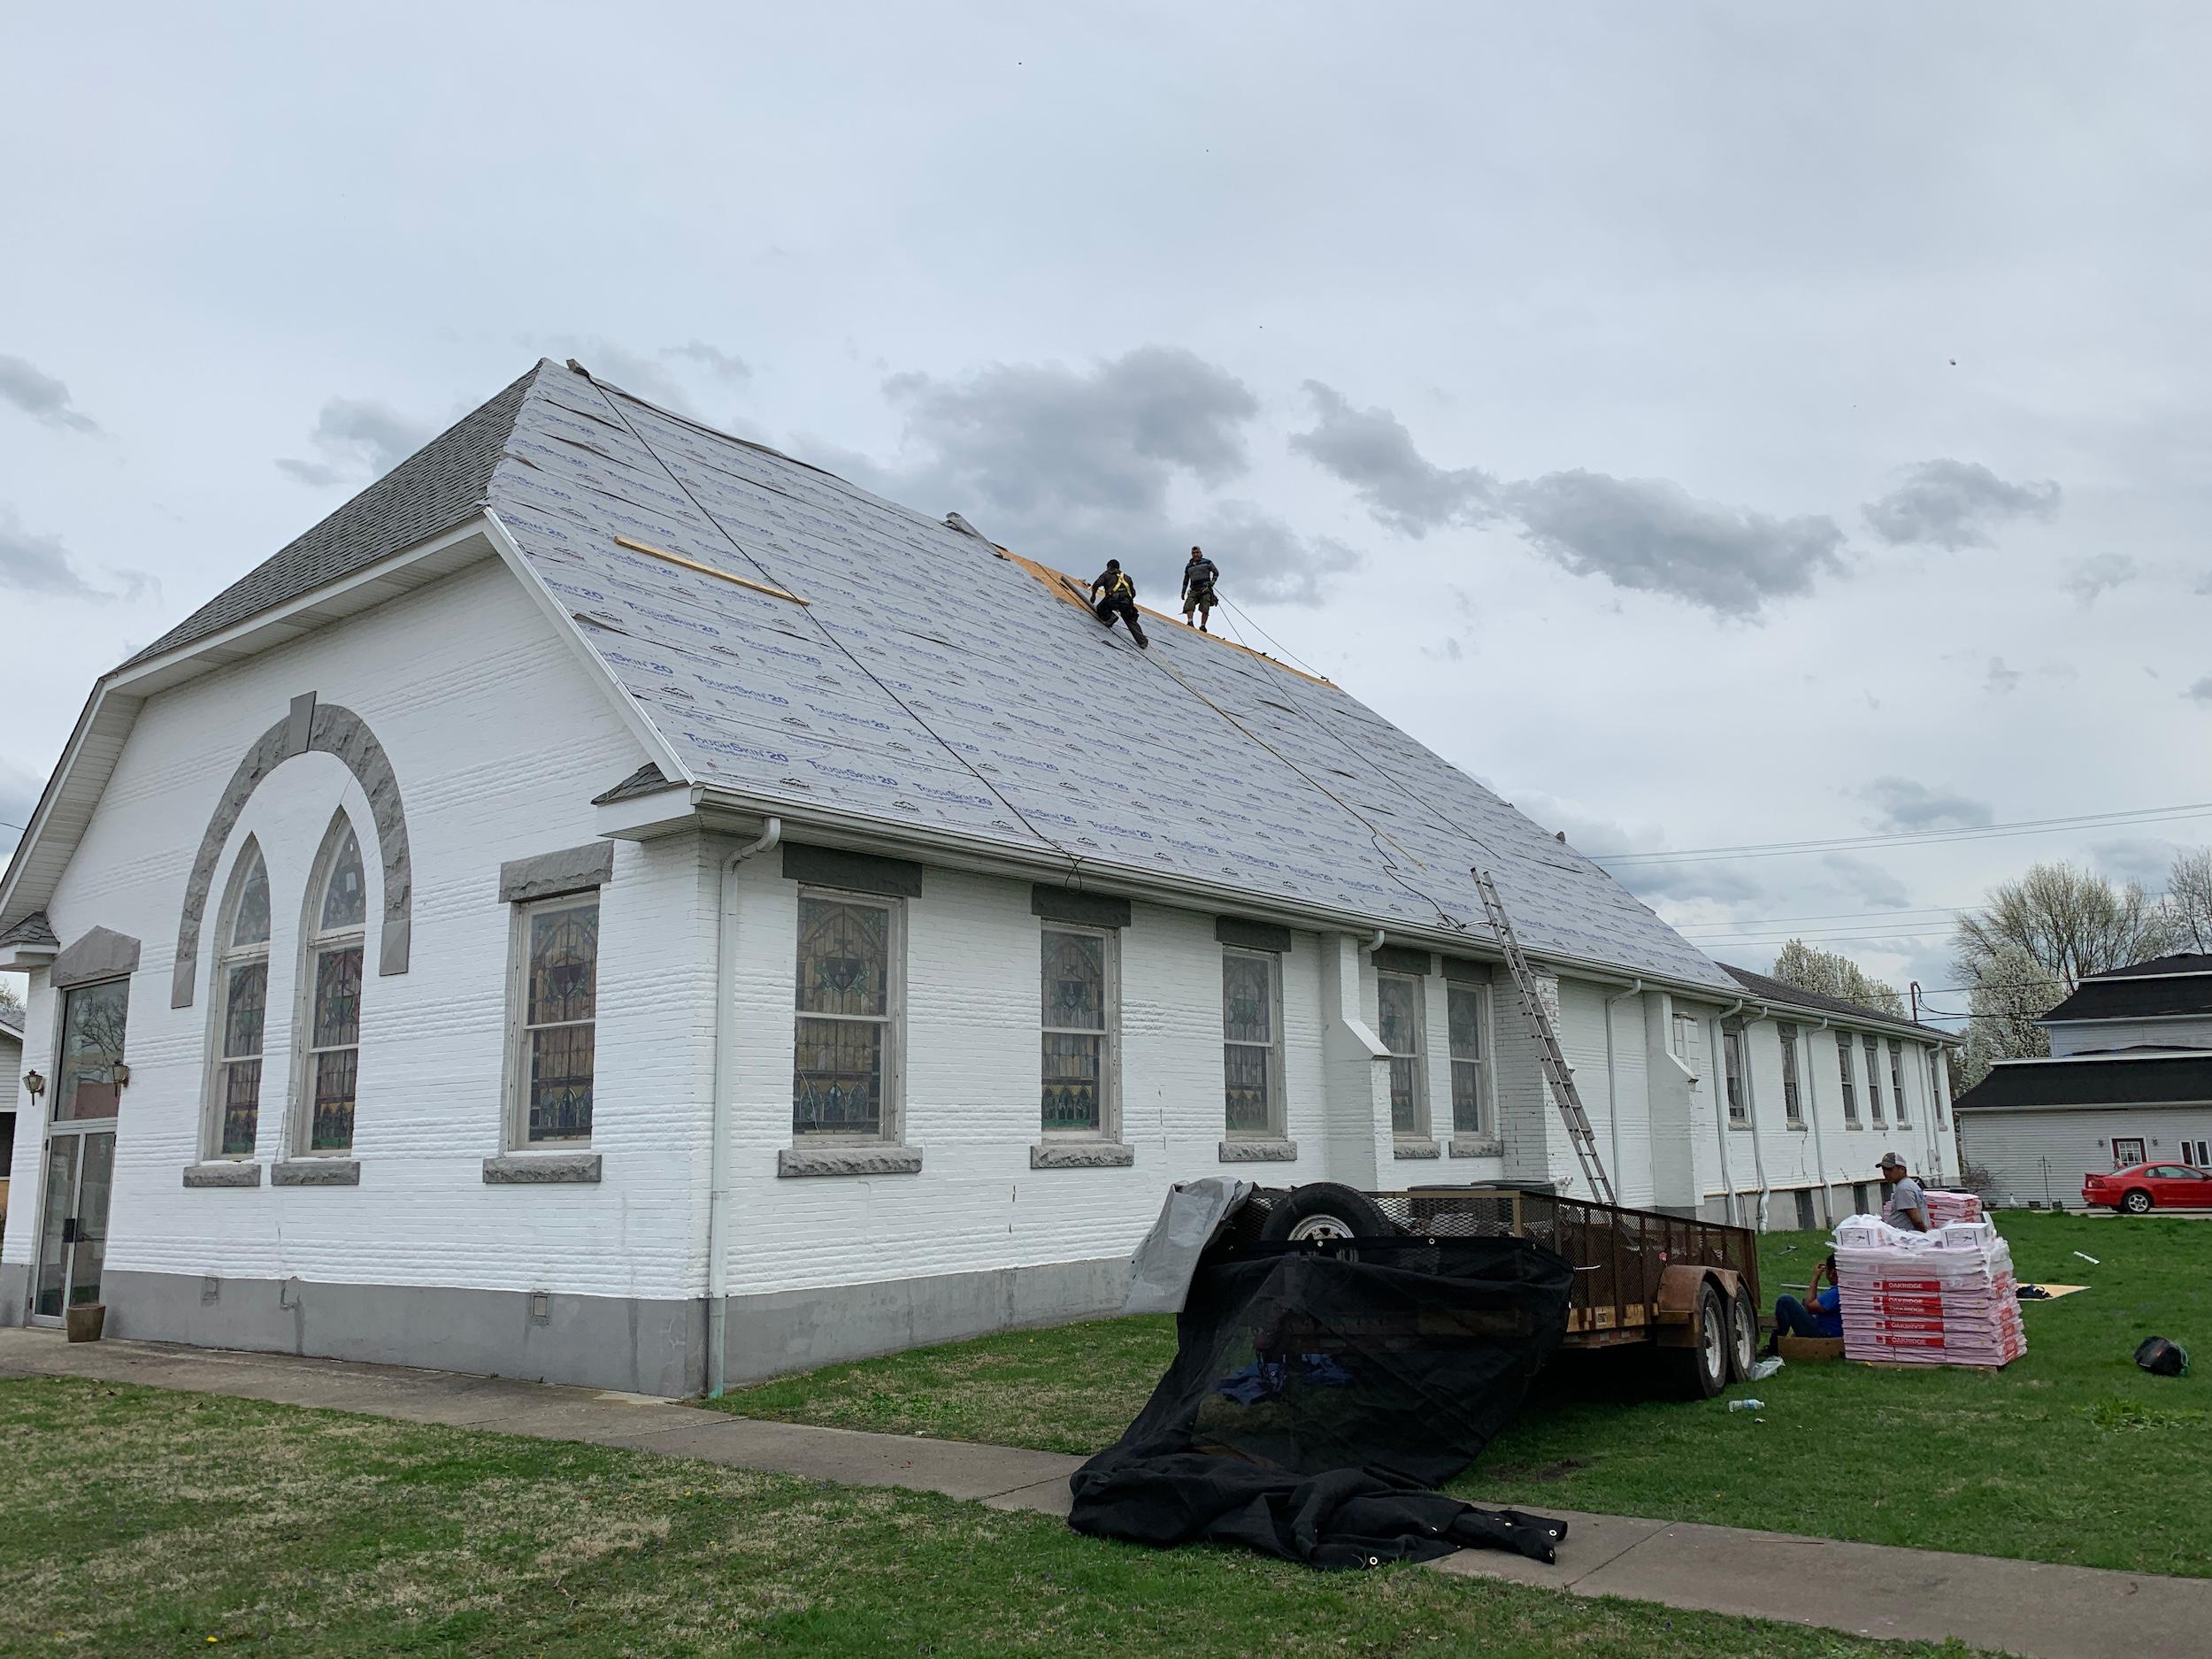 Commercial roofing Indiana contractor church project.